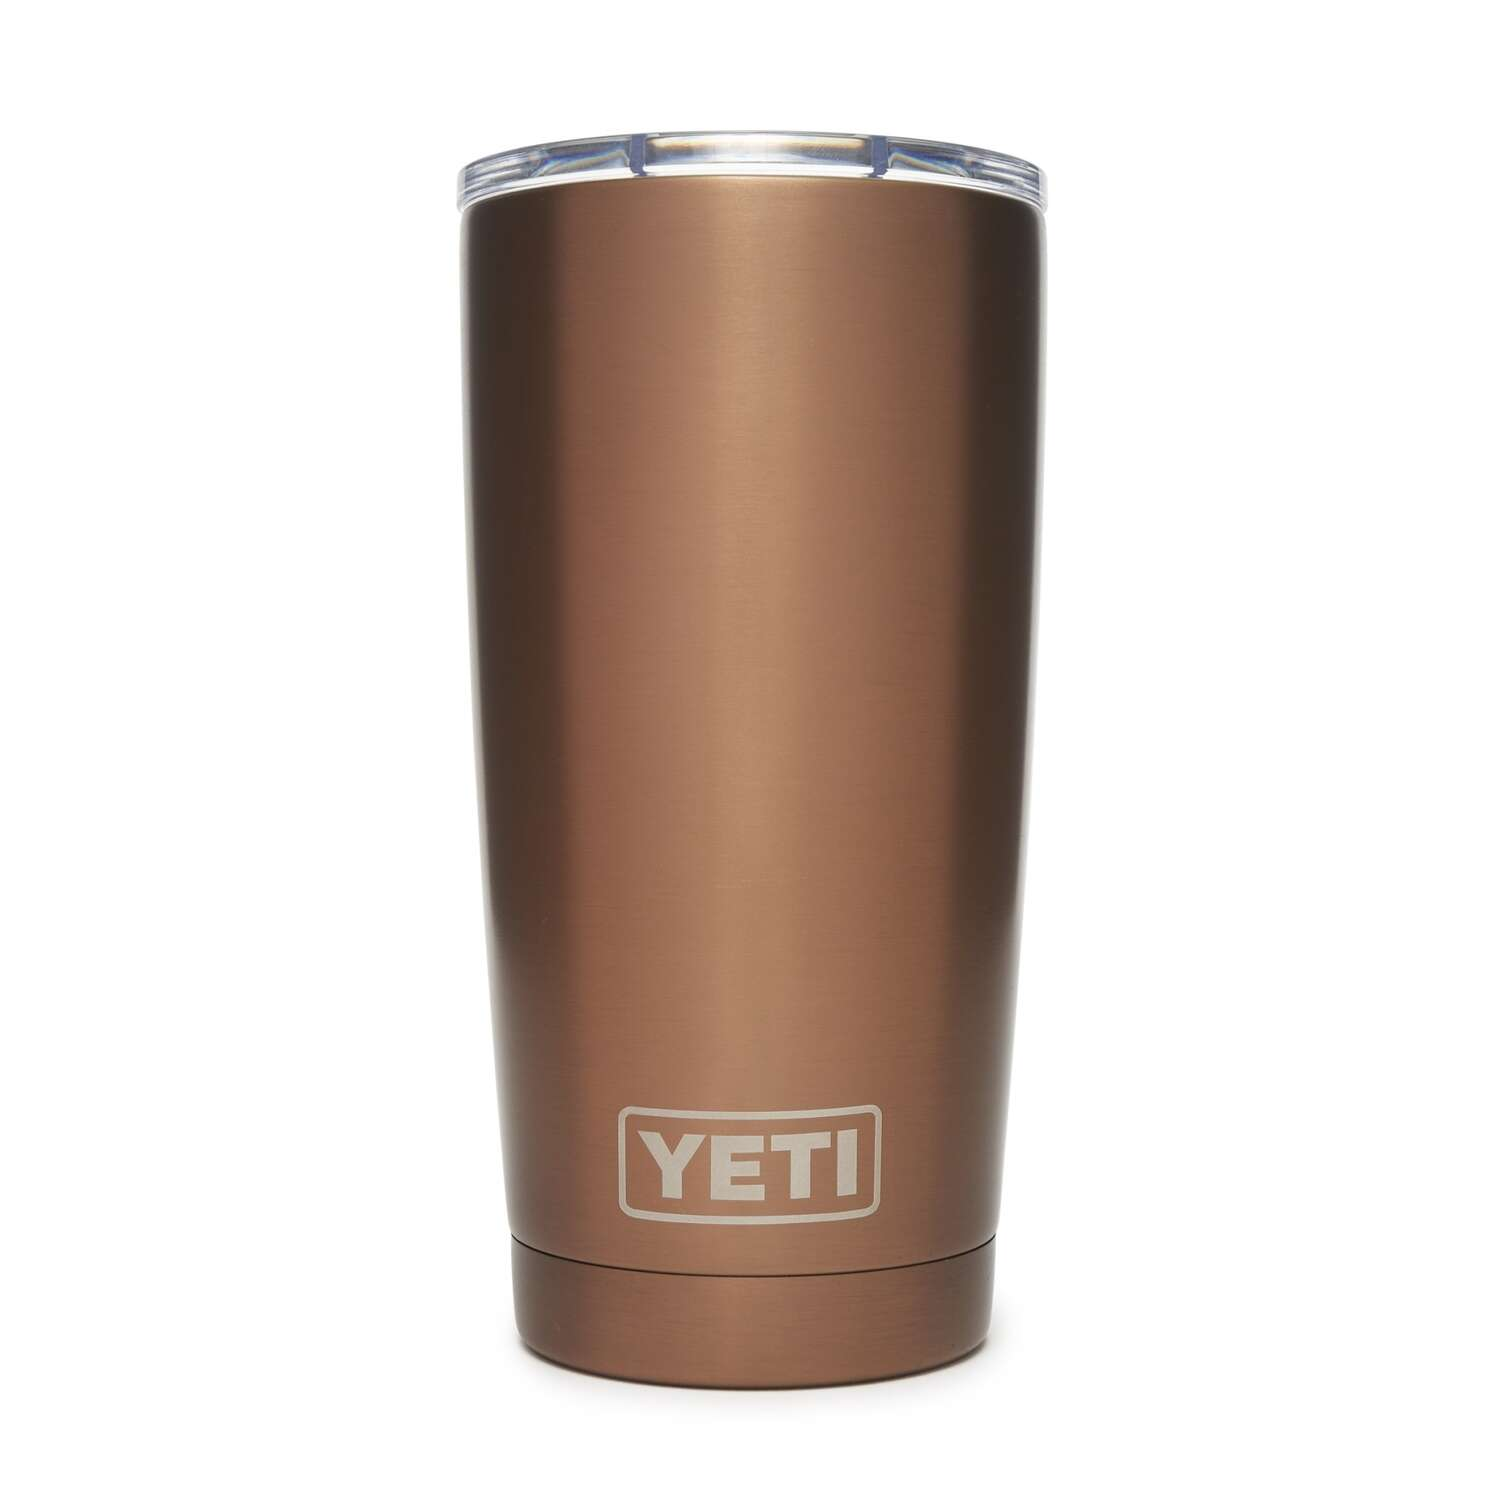 YETI Rambler 20 oz. Copper BPA Free Wine Tumbler with MagSlider Lid